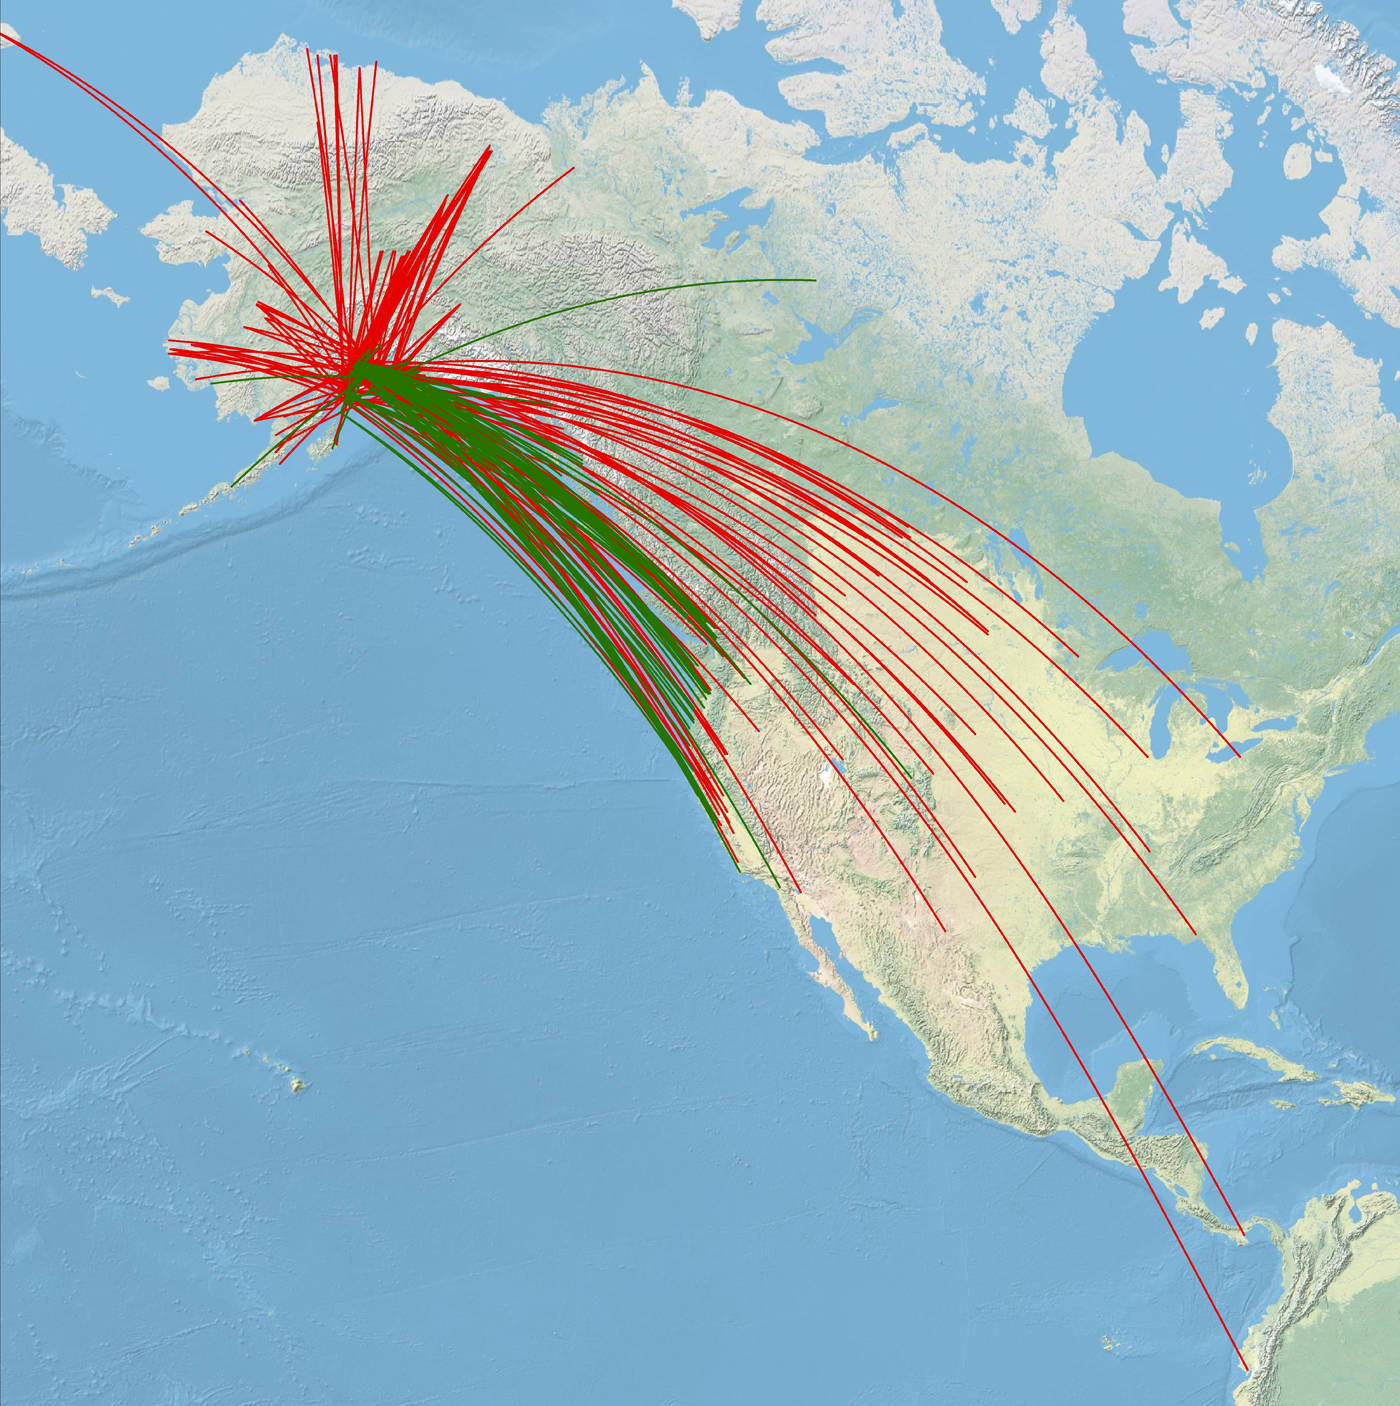 Records of migratory birds either banded on the Kenai Peninsula and recovered elsewhere (green) or banded elsewhere and recovered on the peninsula (red). Data from USGS Bird Banding Laboratory.